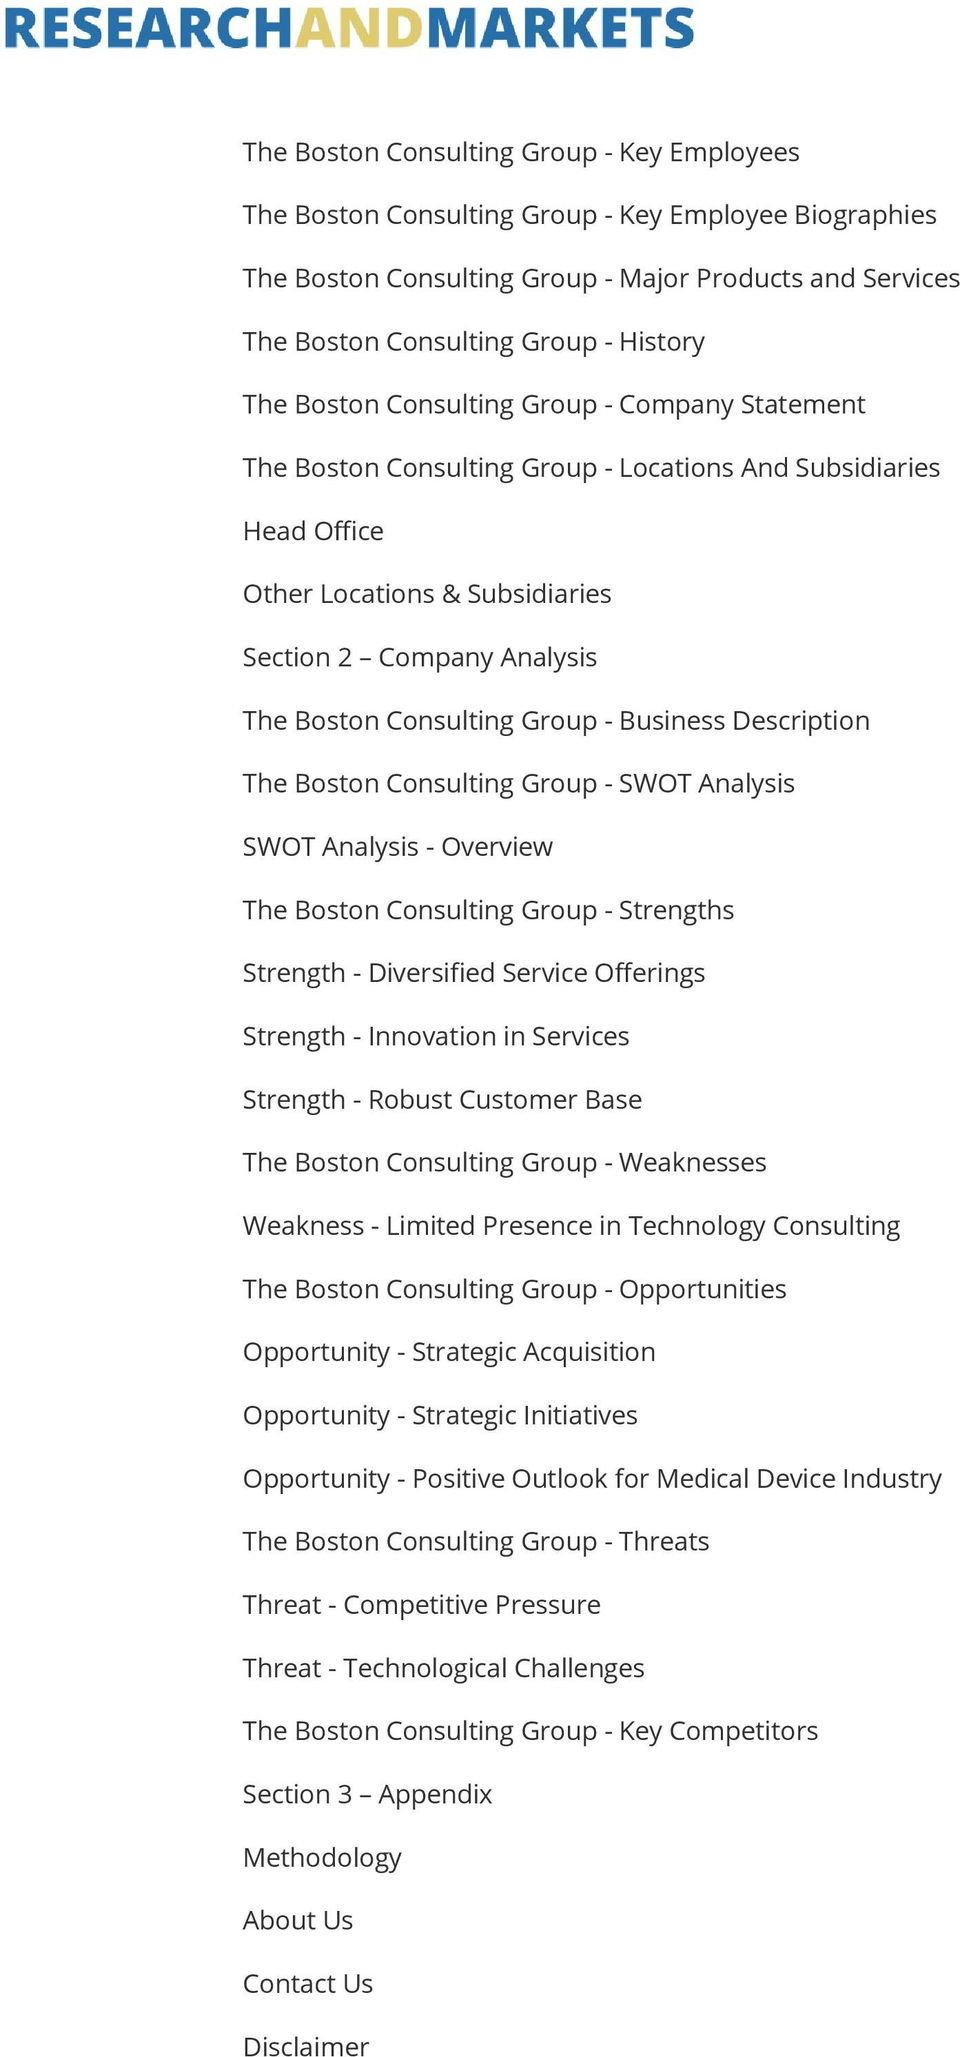 - Business Description The Boston Consulting Group - SWOT Analysis SWOT Analysis - Overview The Boston Consulting Group - Strengths Strength - Diversified Service Offerings Strength - Innovation in